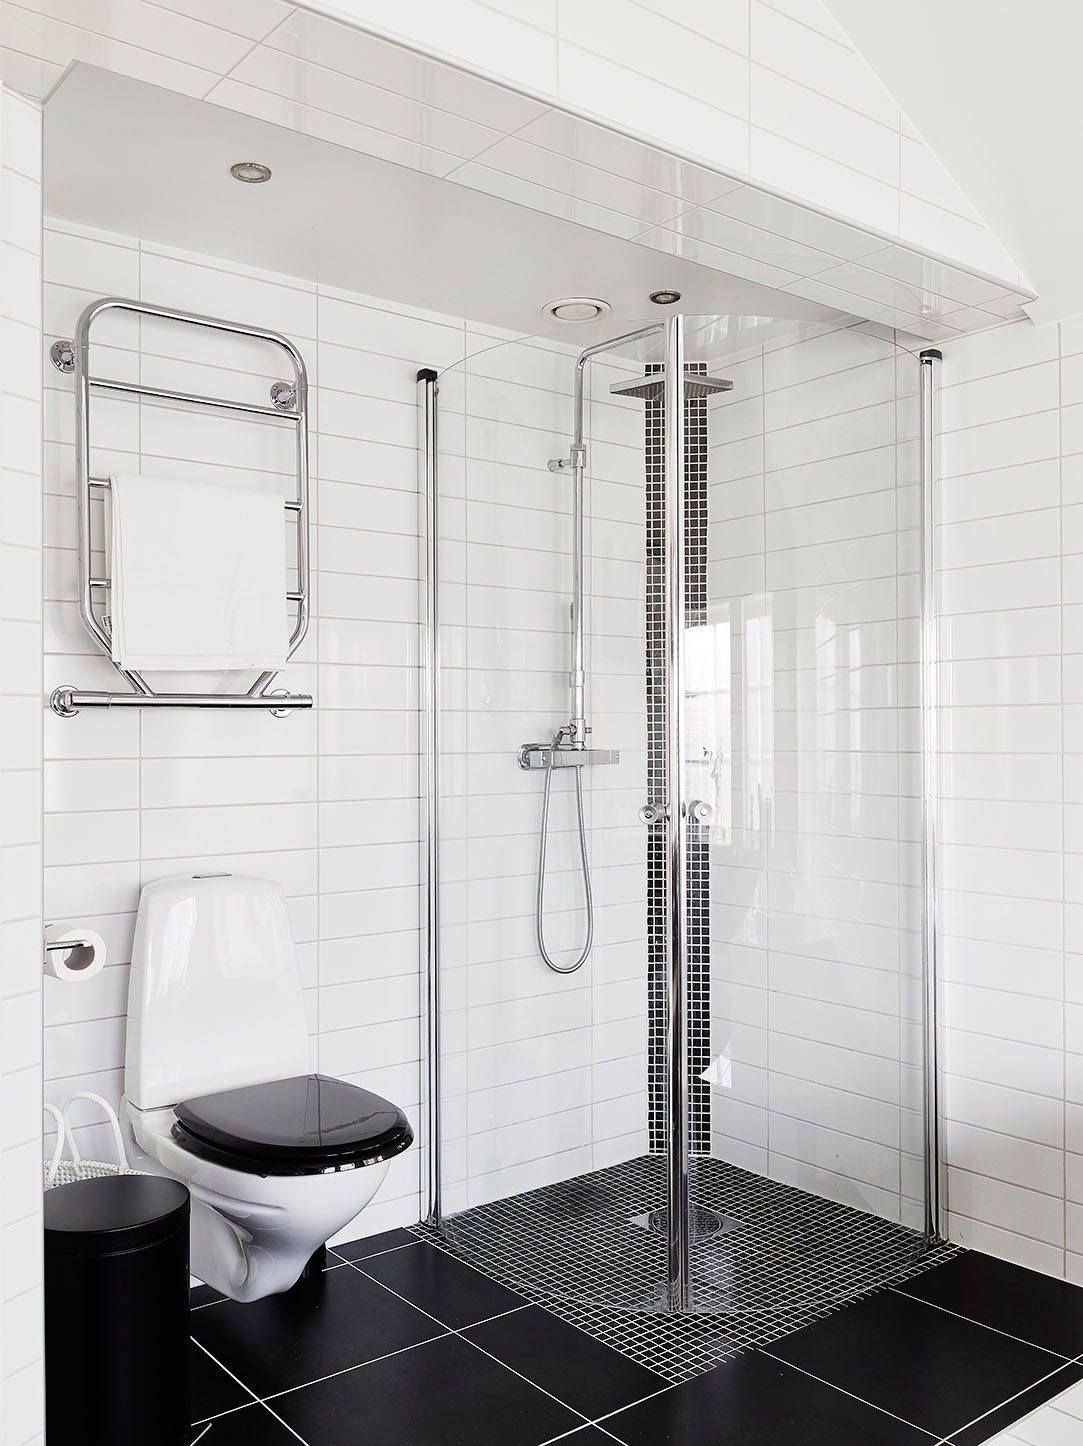 Hotel resorts standing fiberglass shower heated towel rail black hotel resorts standing fiberglass shower heated towel rail black seat toilet large black floor tile white ceramic wall ceiling spotlight large roll toilet dailygadgetfo Choice Image